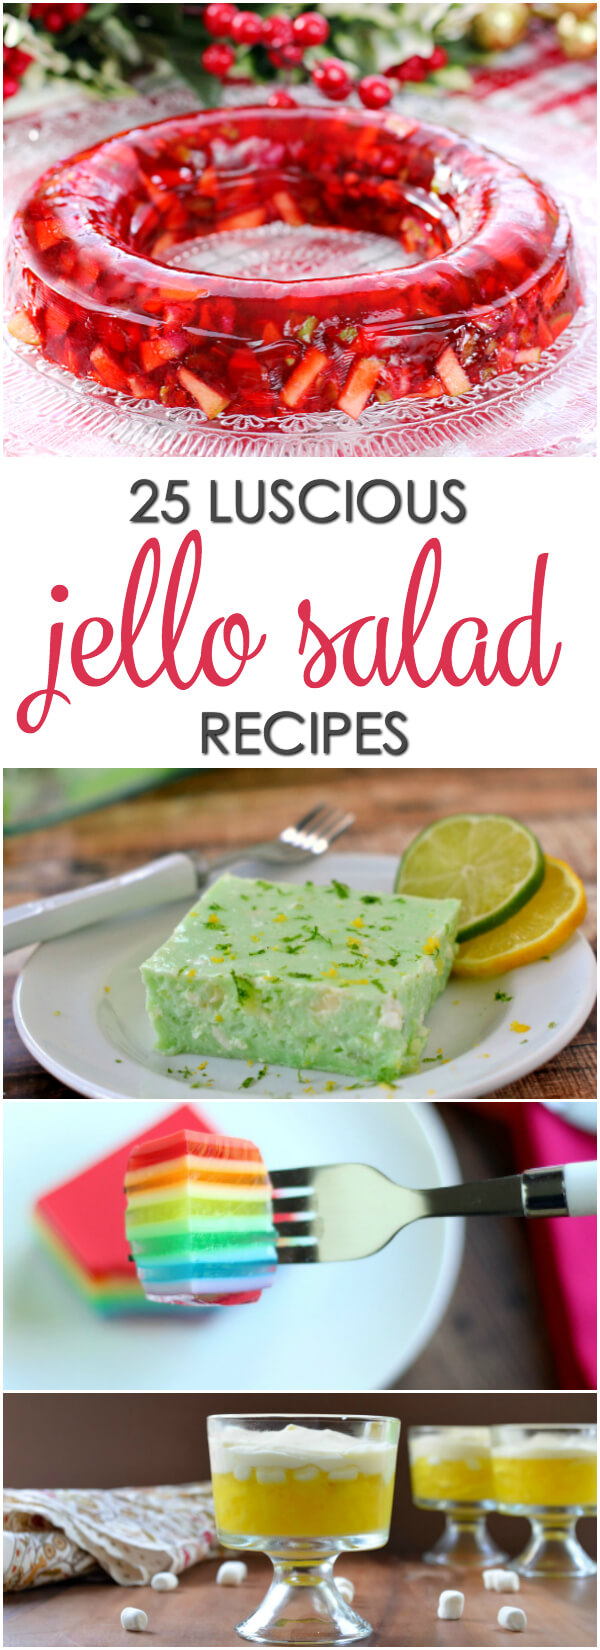 25 Luscious Jello Salad Recipes - including classic and modern versions of your favorite gelatin dishes